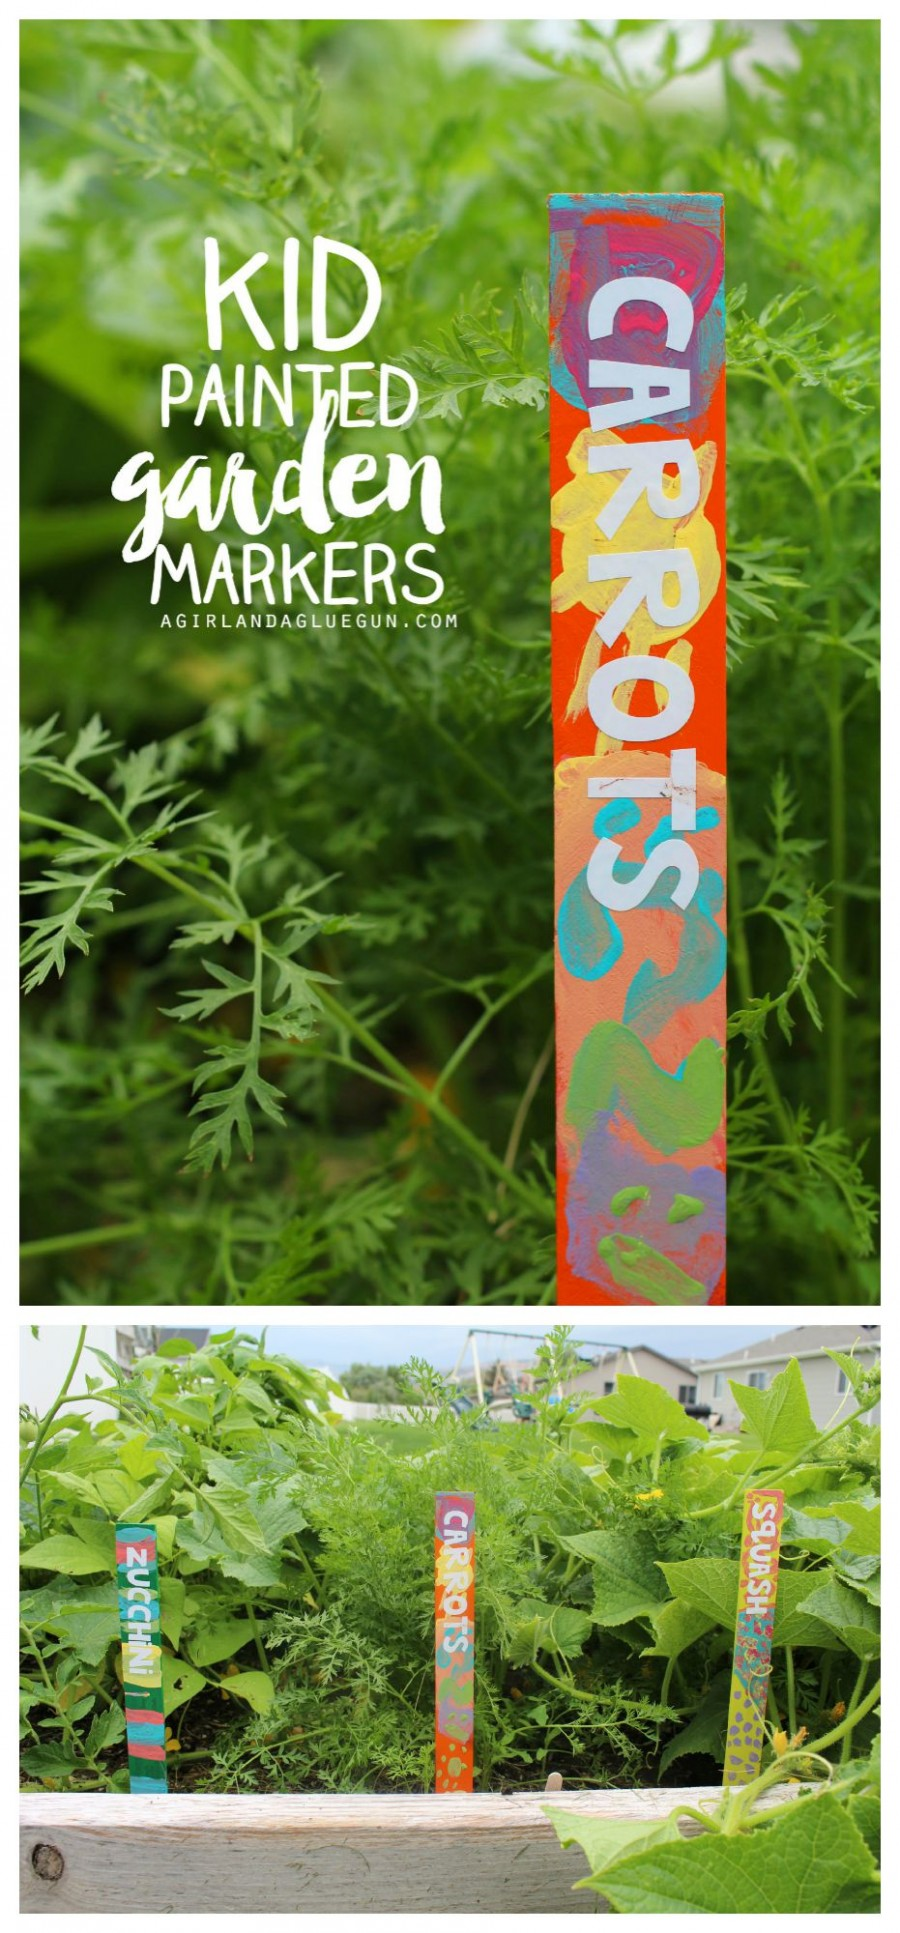 Kid Painted Garden Markers